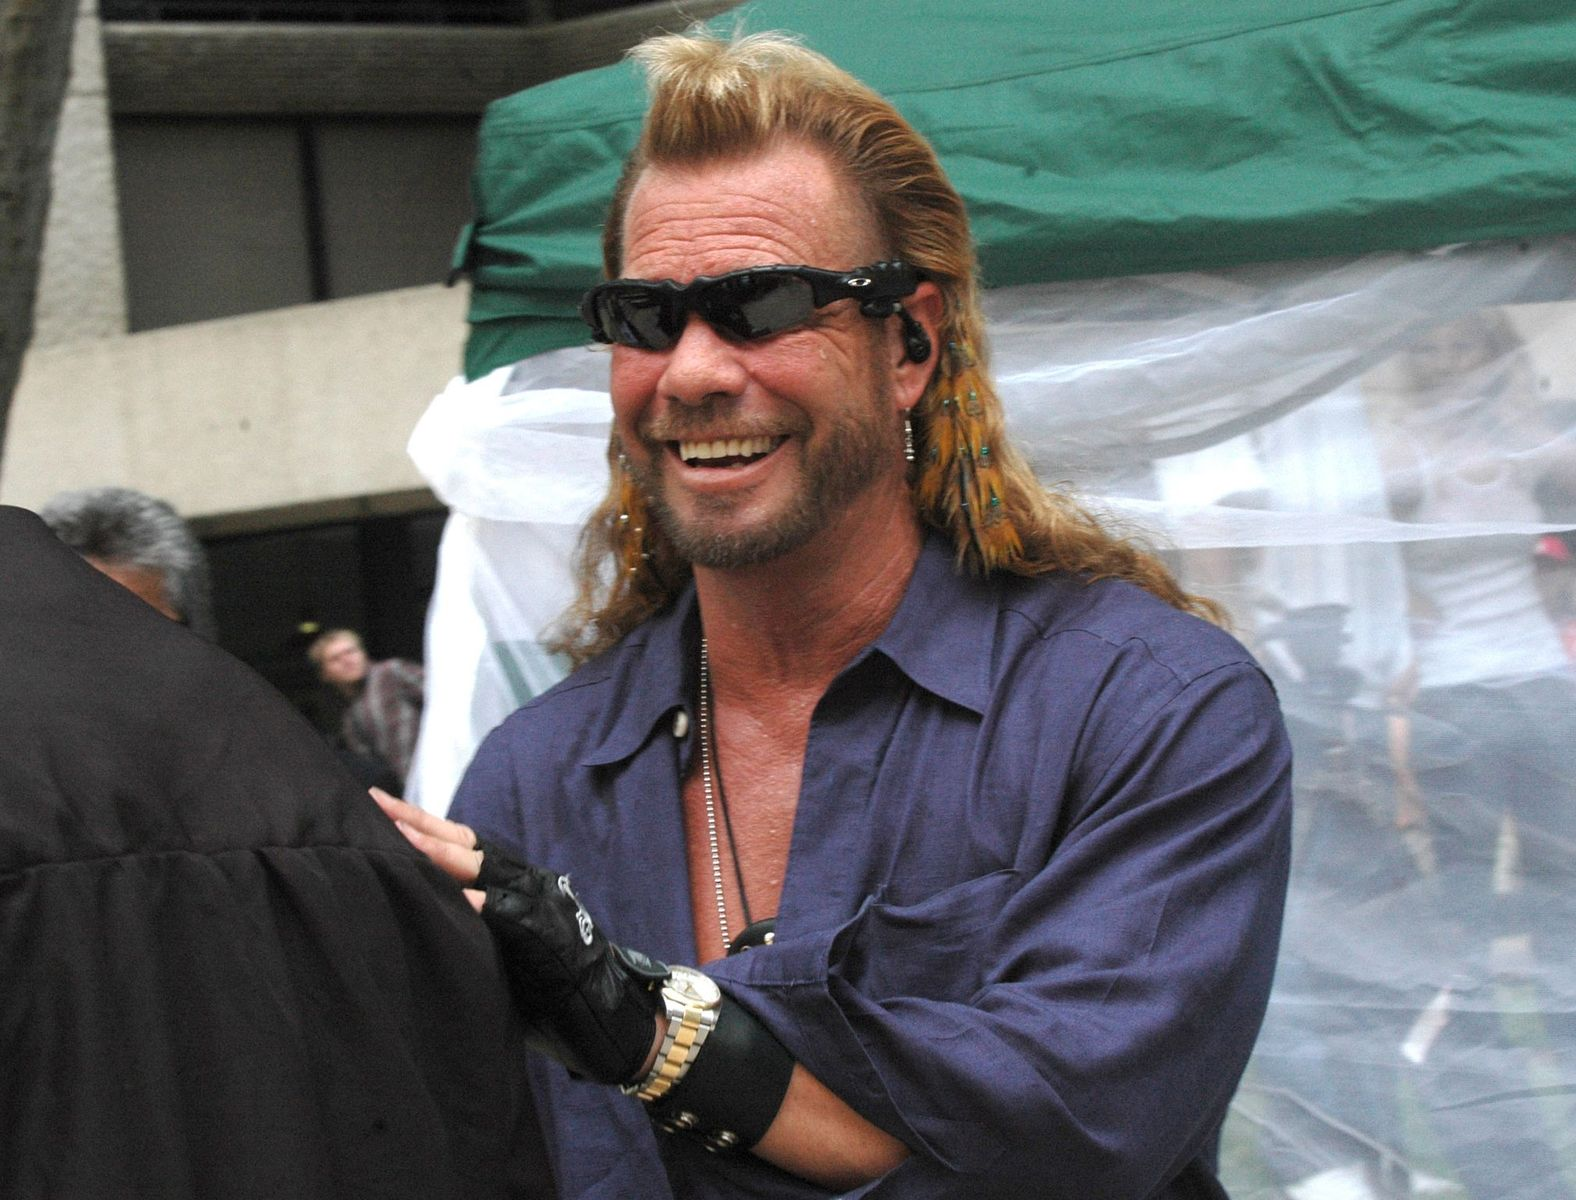 """Duane """"Dog"""" Chapman during March of Dimes Honolulu Fundraiser on November 14, 2006 in Honolulu, Hawaii, United States   Photo: Getty Images"""